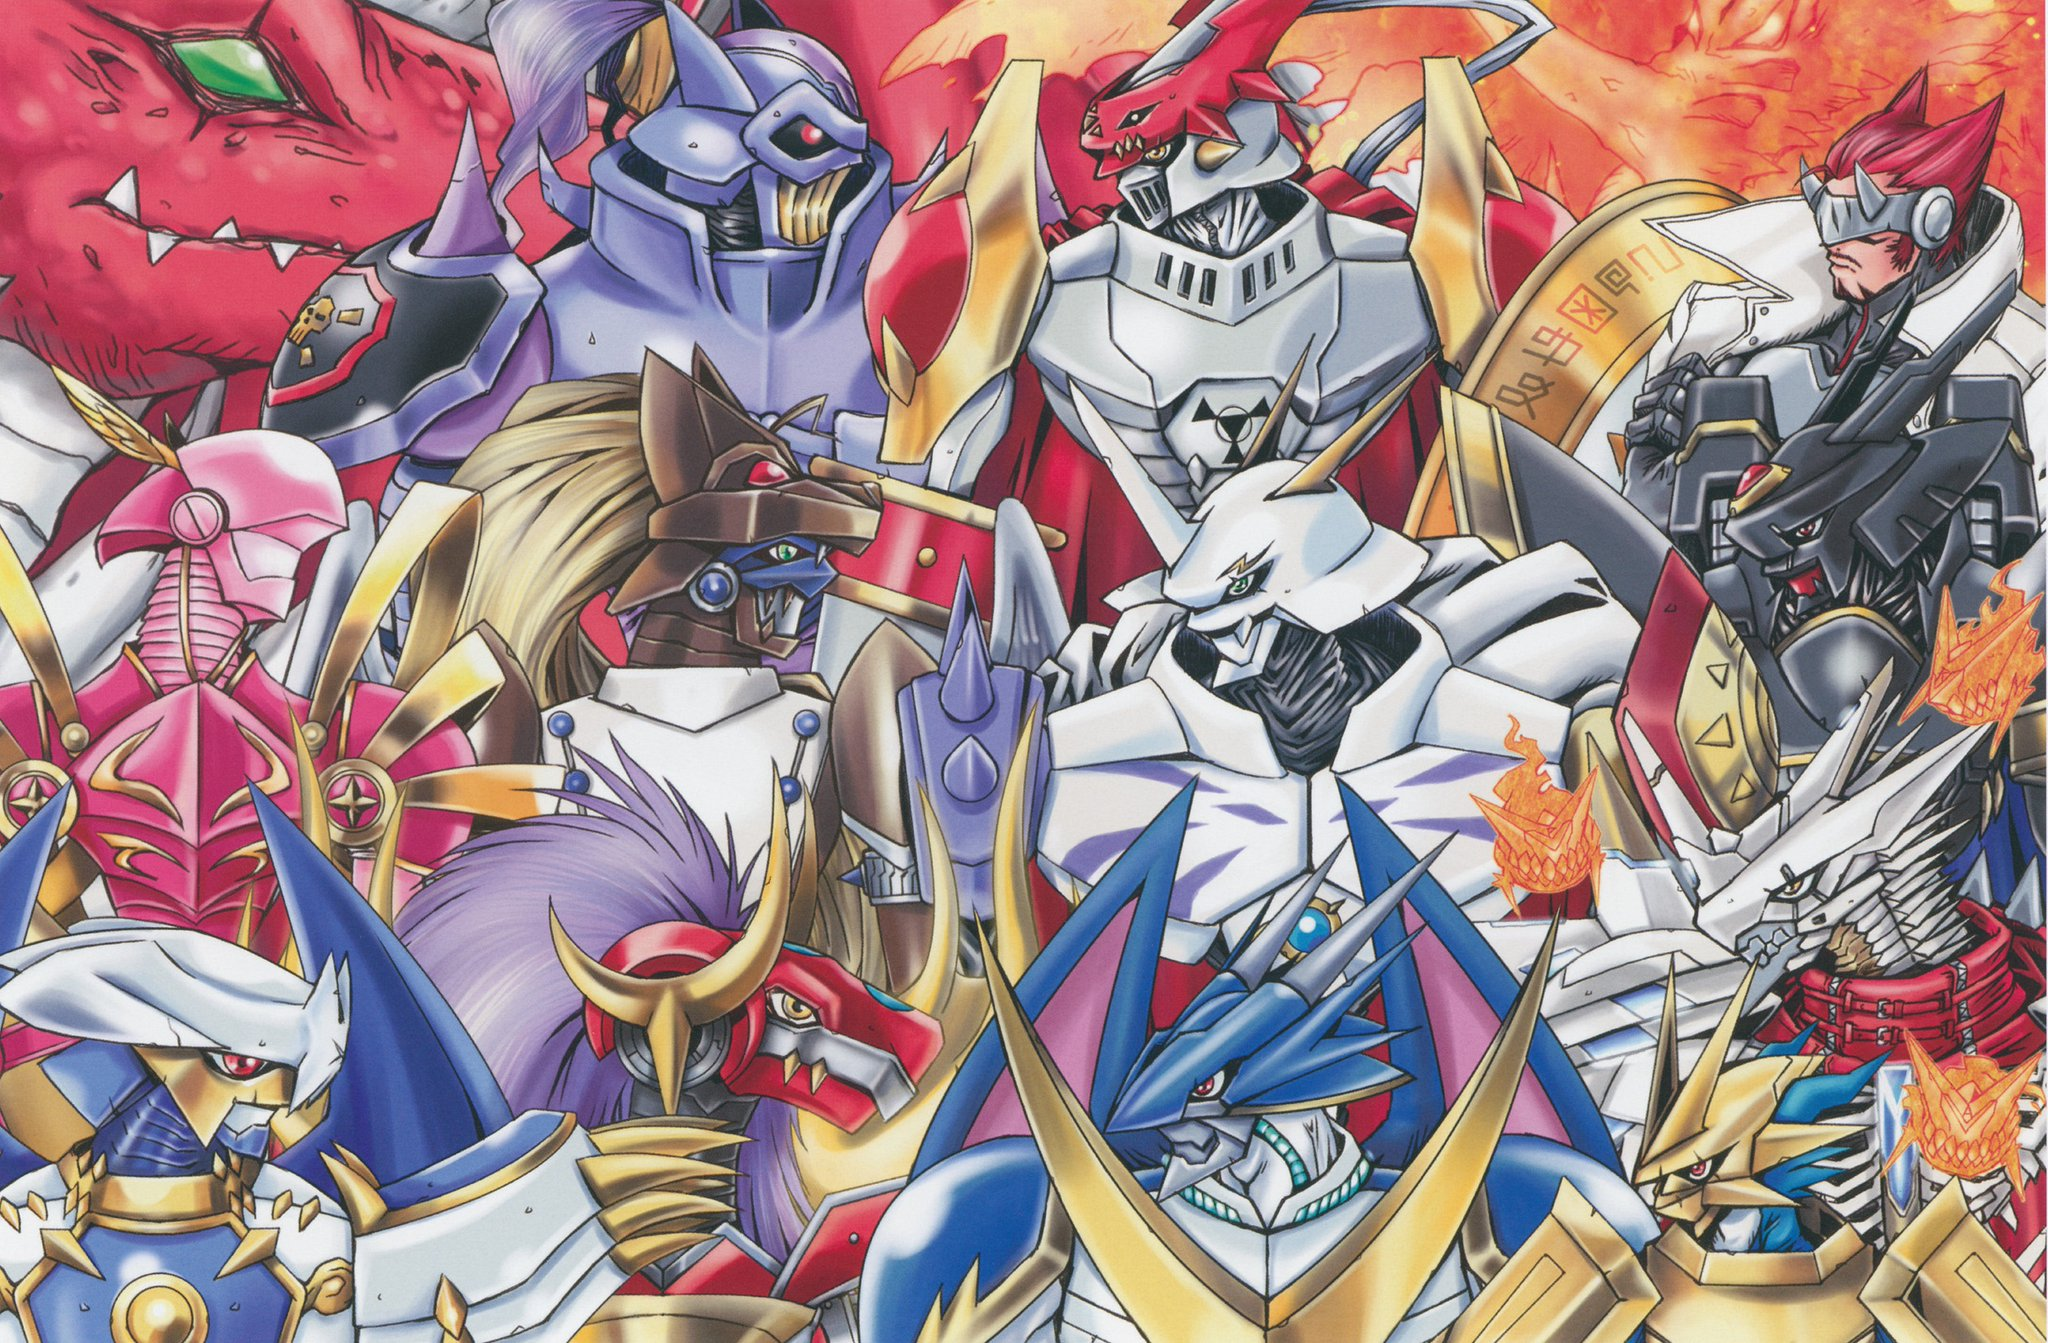 Digimon Seven Great Demon Lords Vs Royal Knights Spacebattles Forums Gallery jesmon is a holy knight digimon. great demon lords vs royal knights